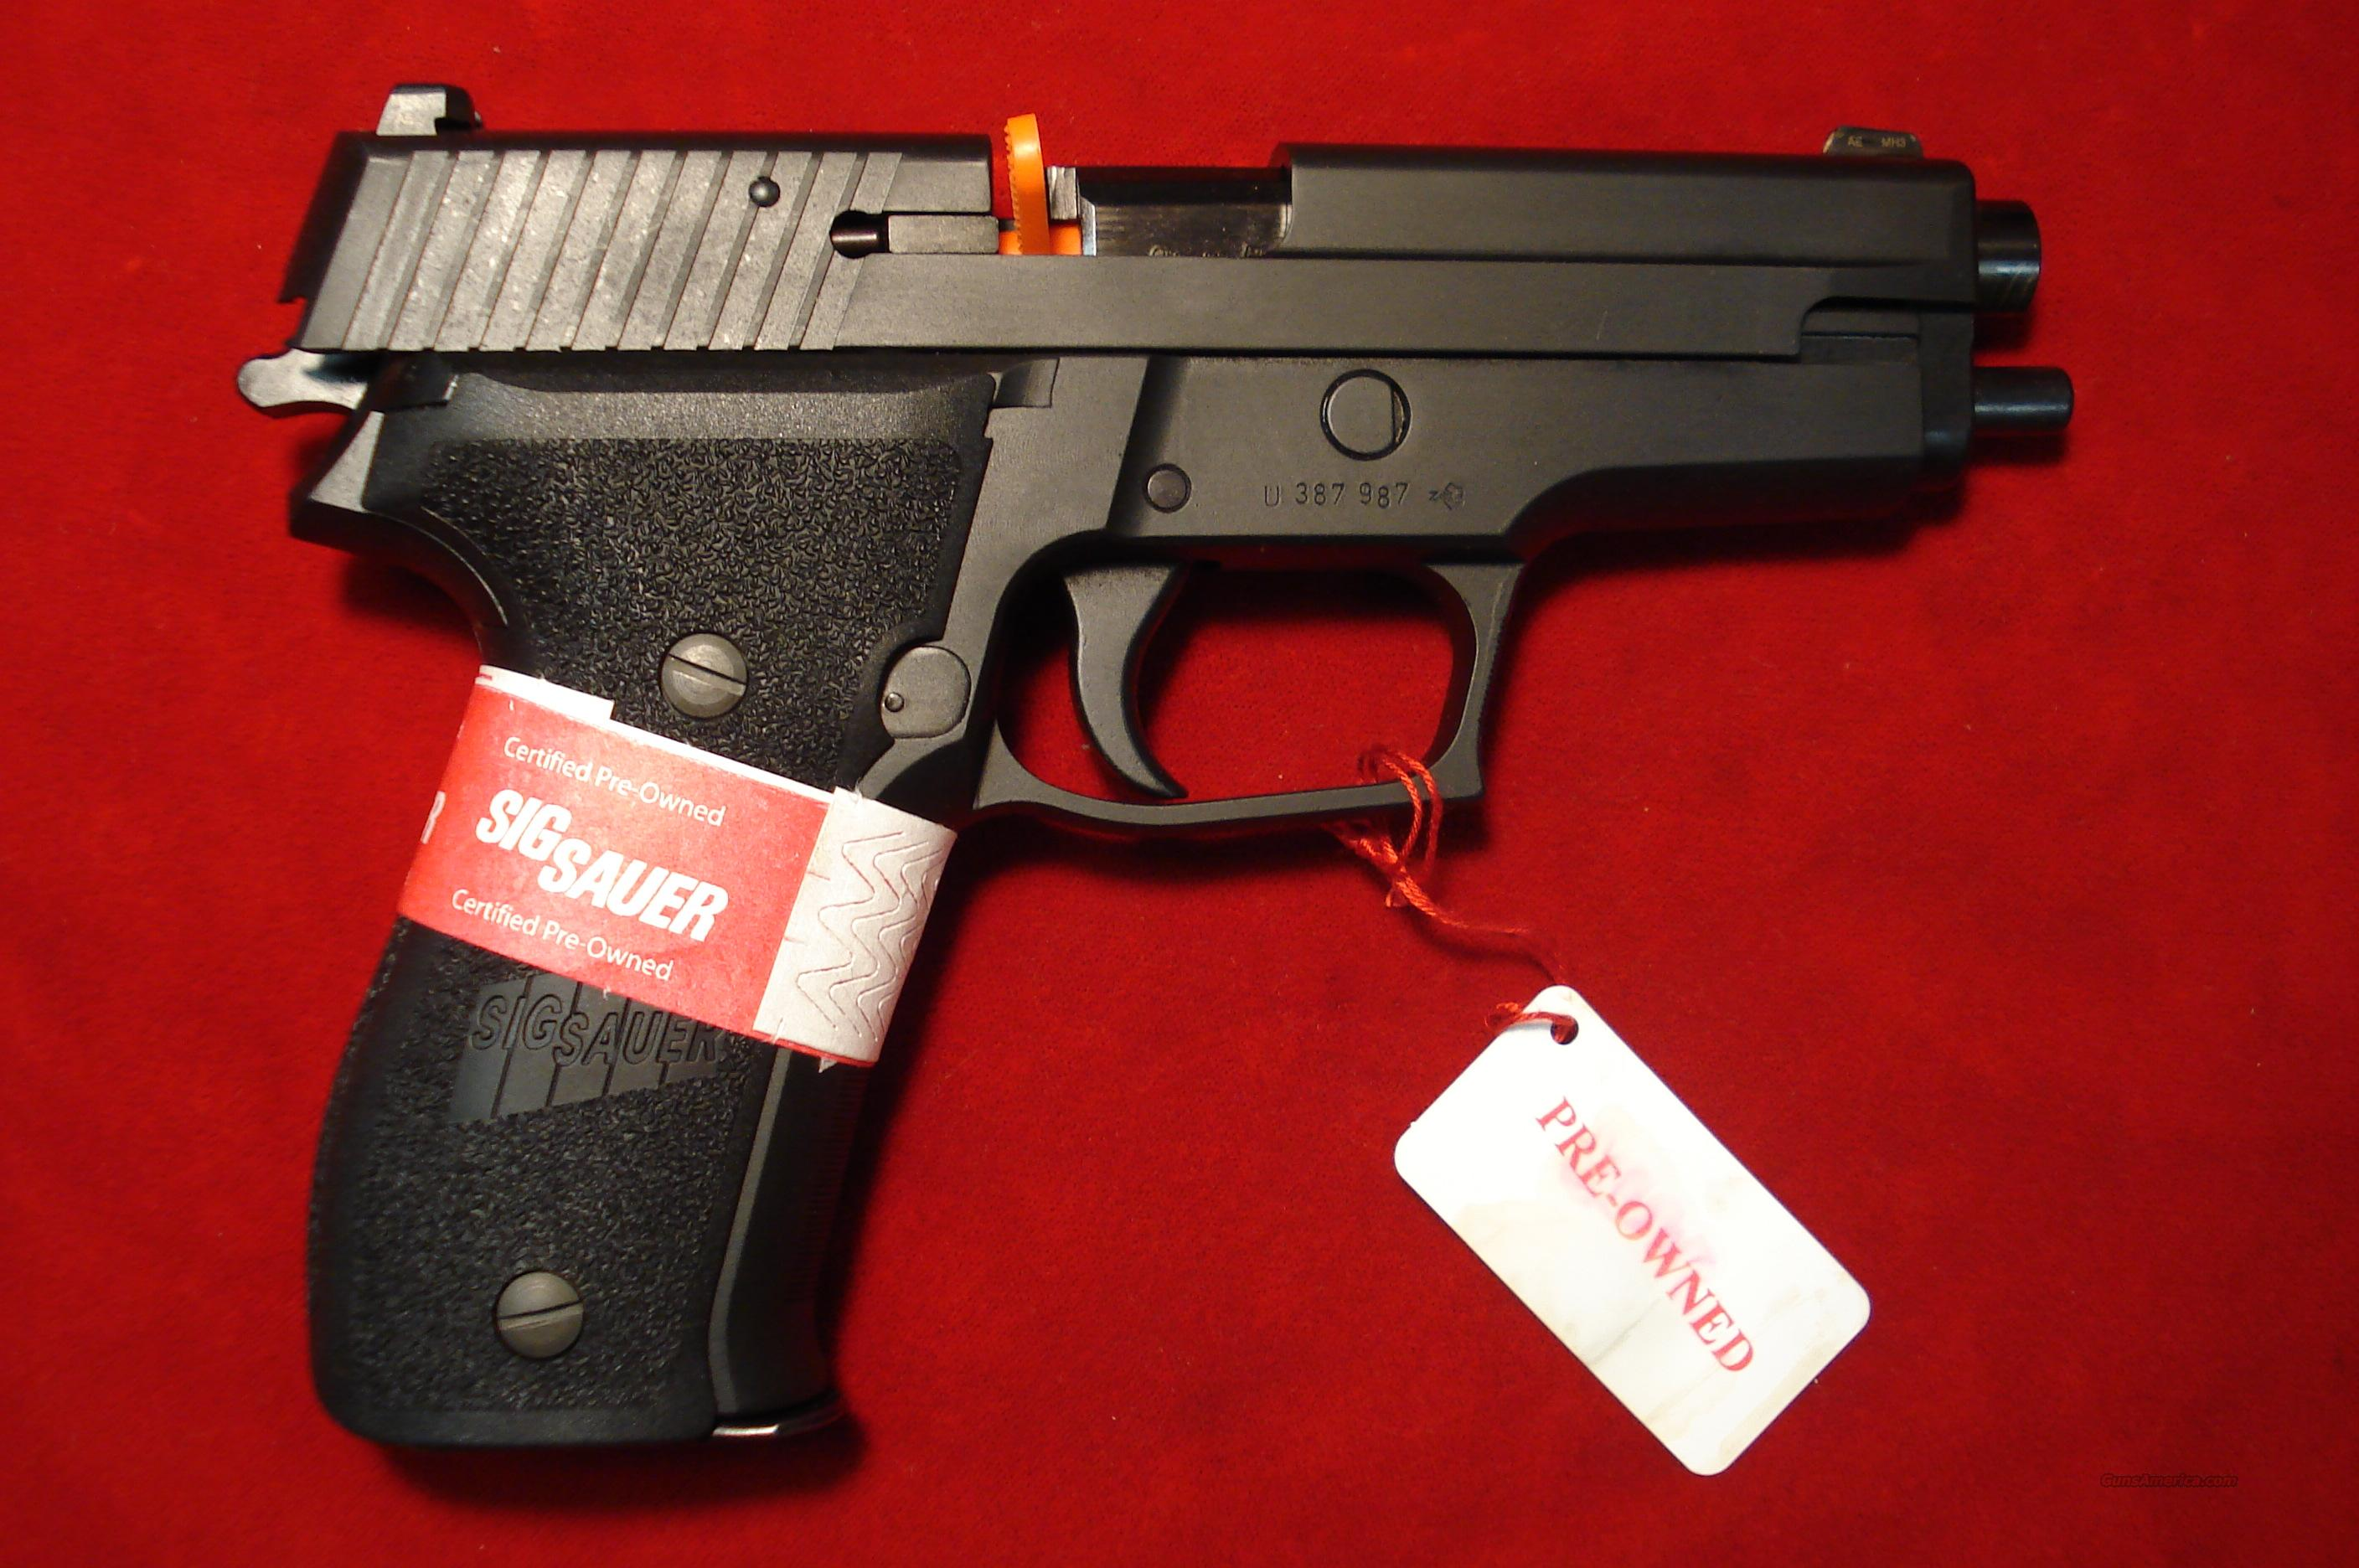 SIG SAUER P226 9MM CERTIFIED PREOWNED  Guns > Pistols > Sig - Sauer/Sigarms Pistols > P226